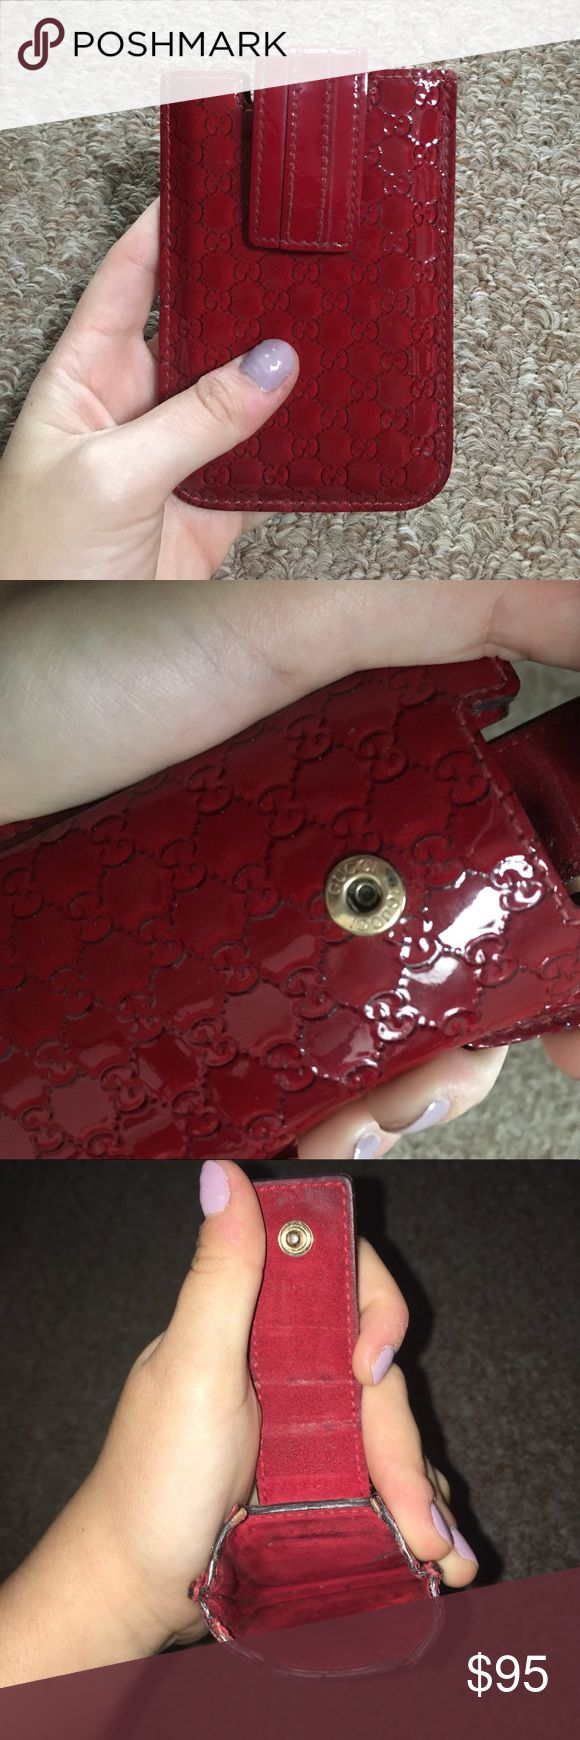 Authentic Gucci Credit Card Case Red authentic Gucci credit card case. Patent leather. In good condition! Showed pictures of wear. Gucci Bags Wallets